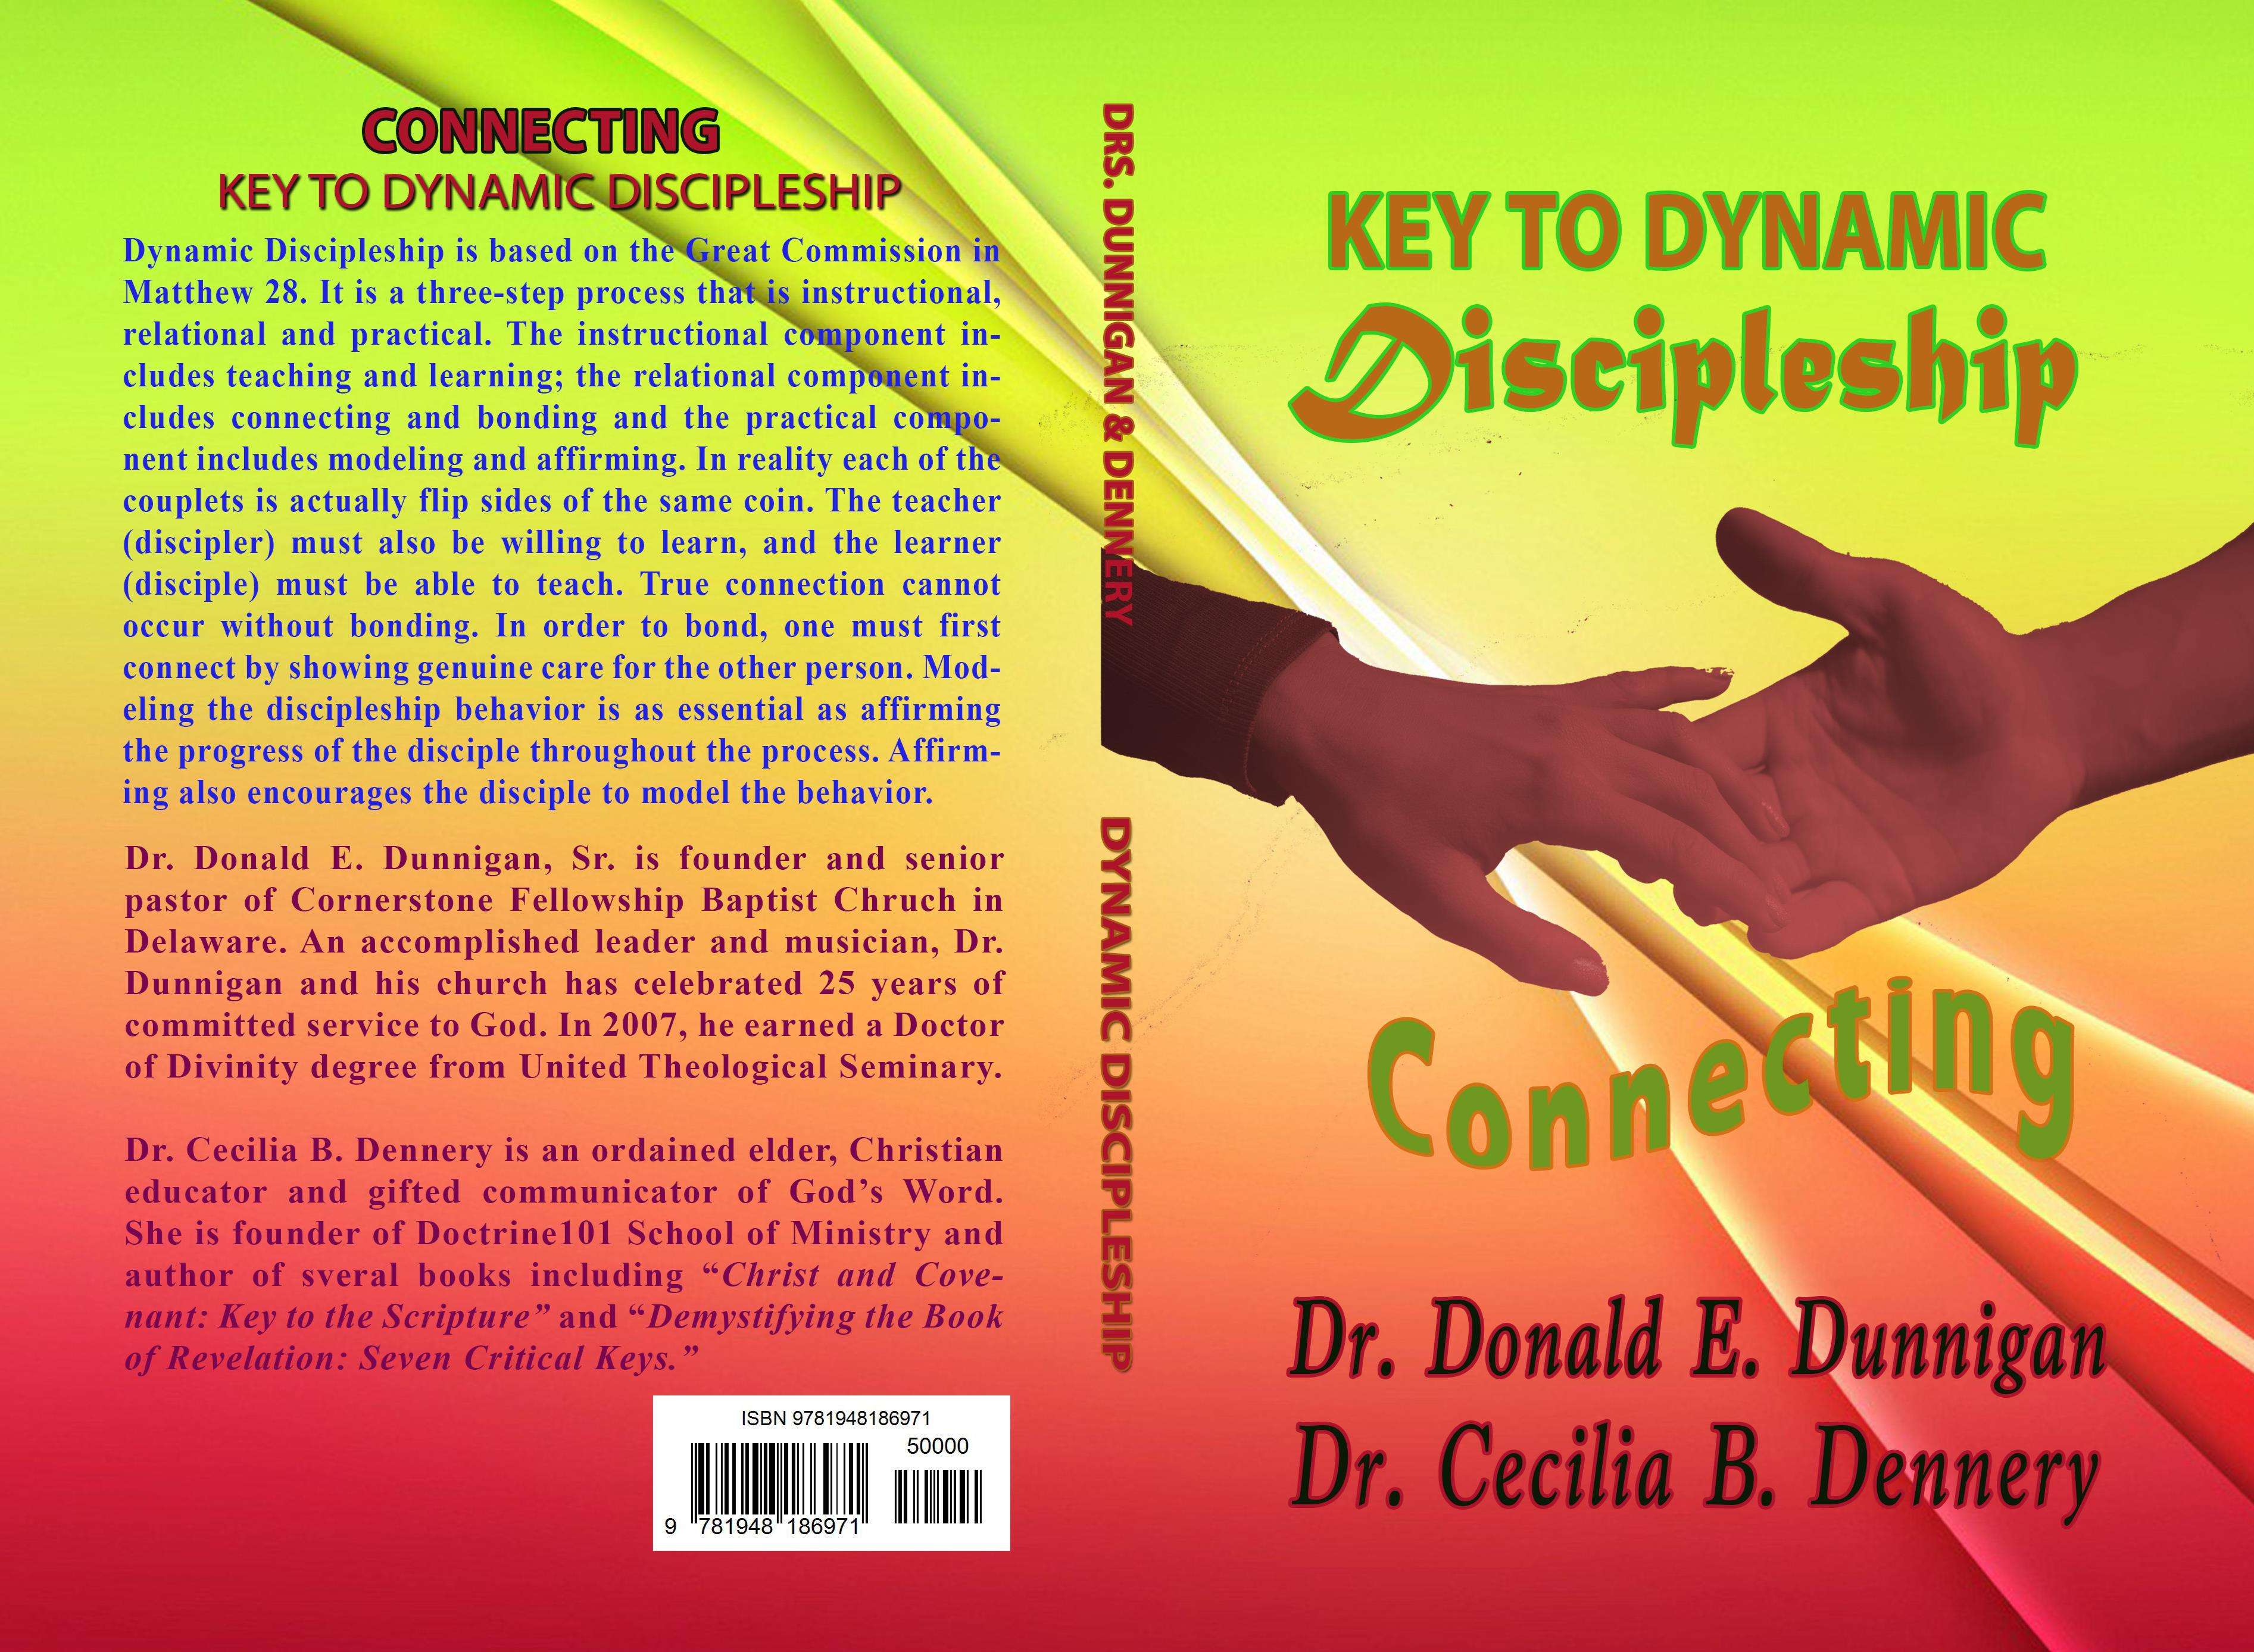 CONNECTING: KEY TO DYNAMIC DISCIPLESHIP cover image